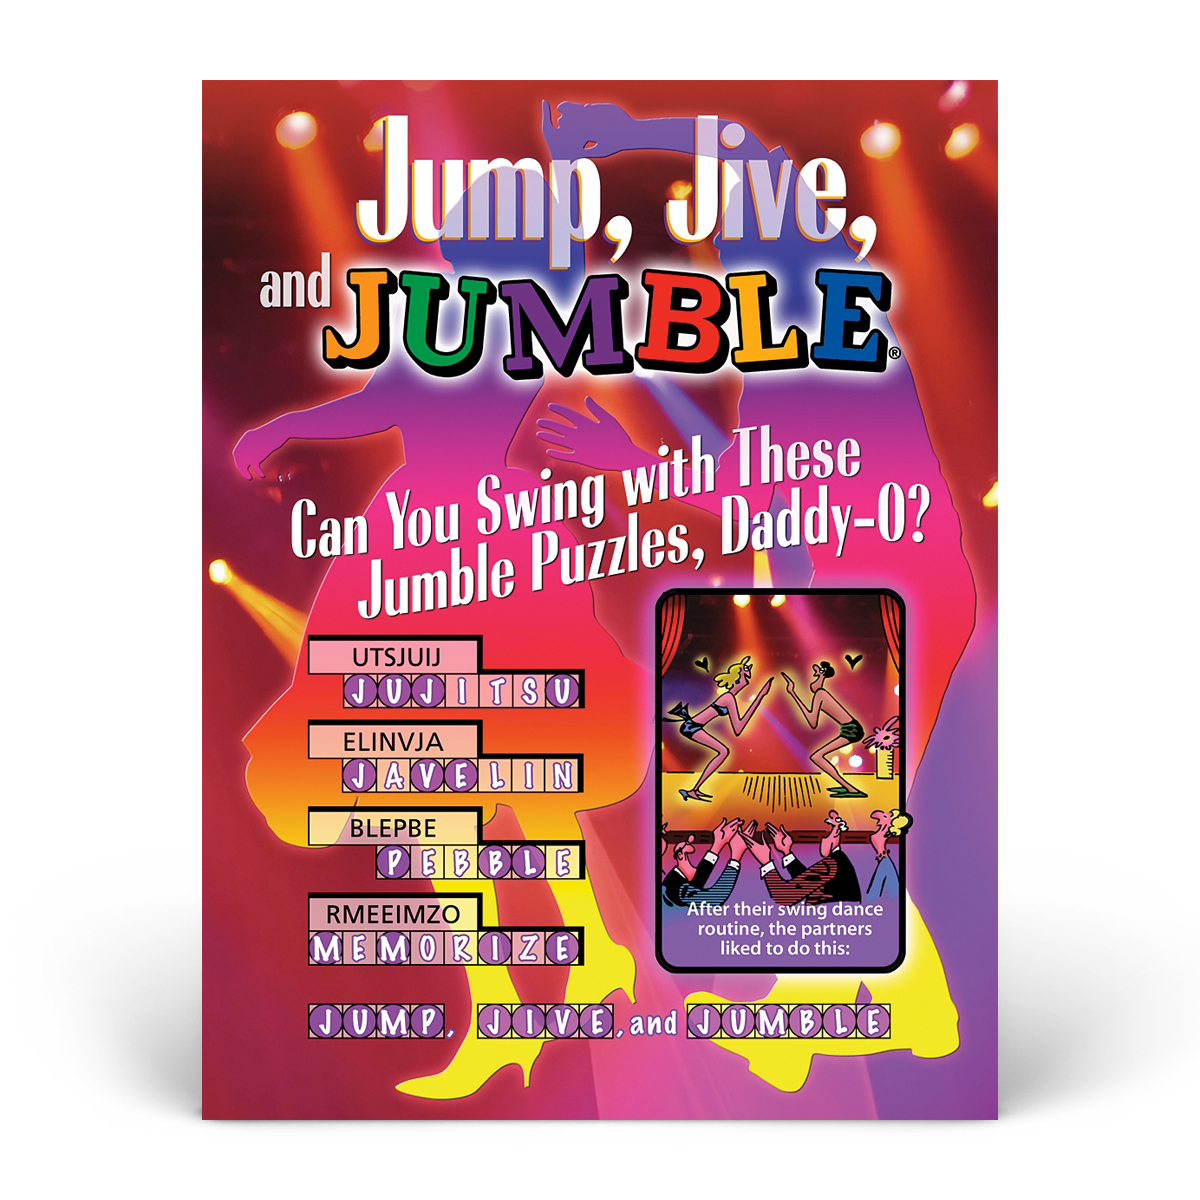 Jump, Jive, and Jumble!